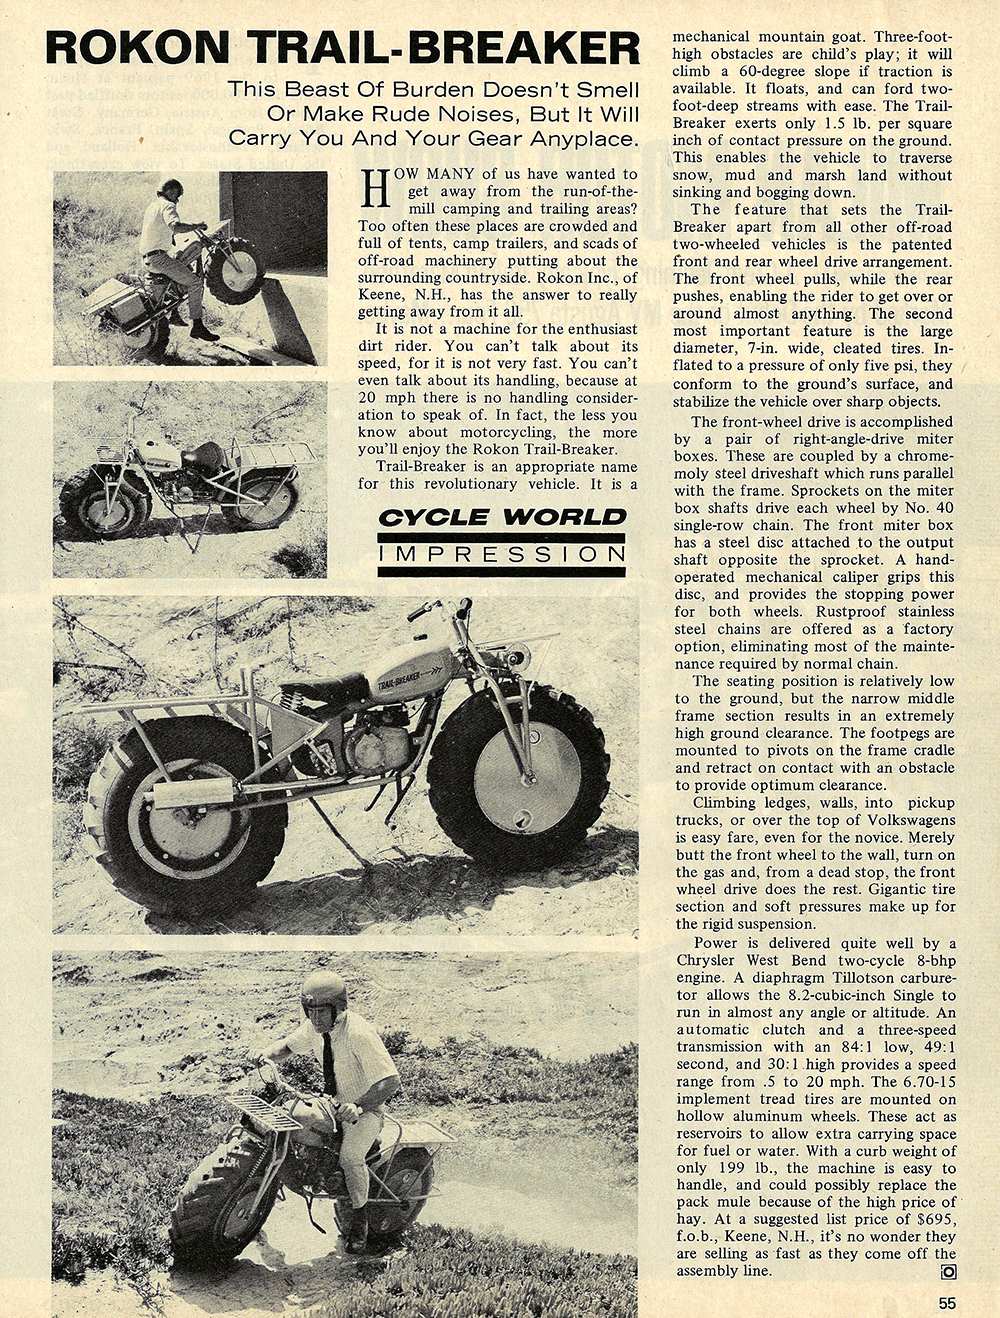 1970 Rokon trail breaker test.jpg